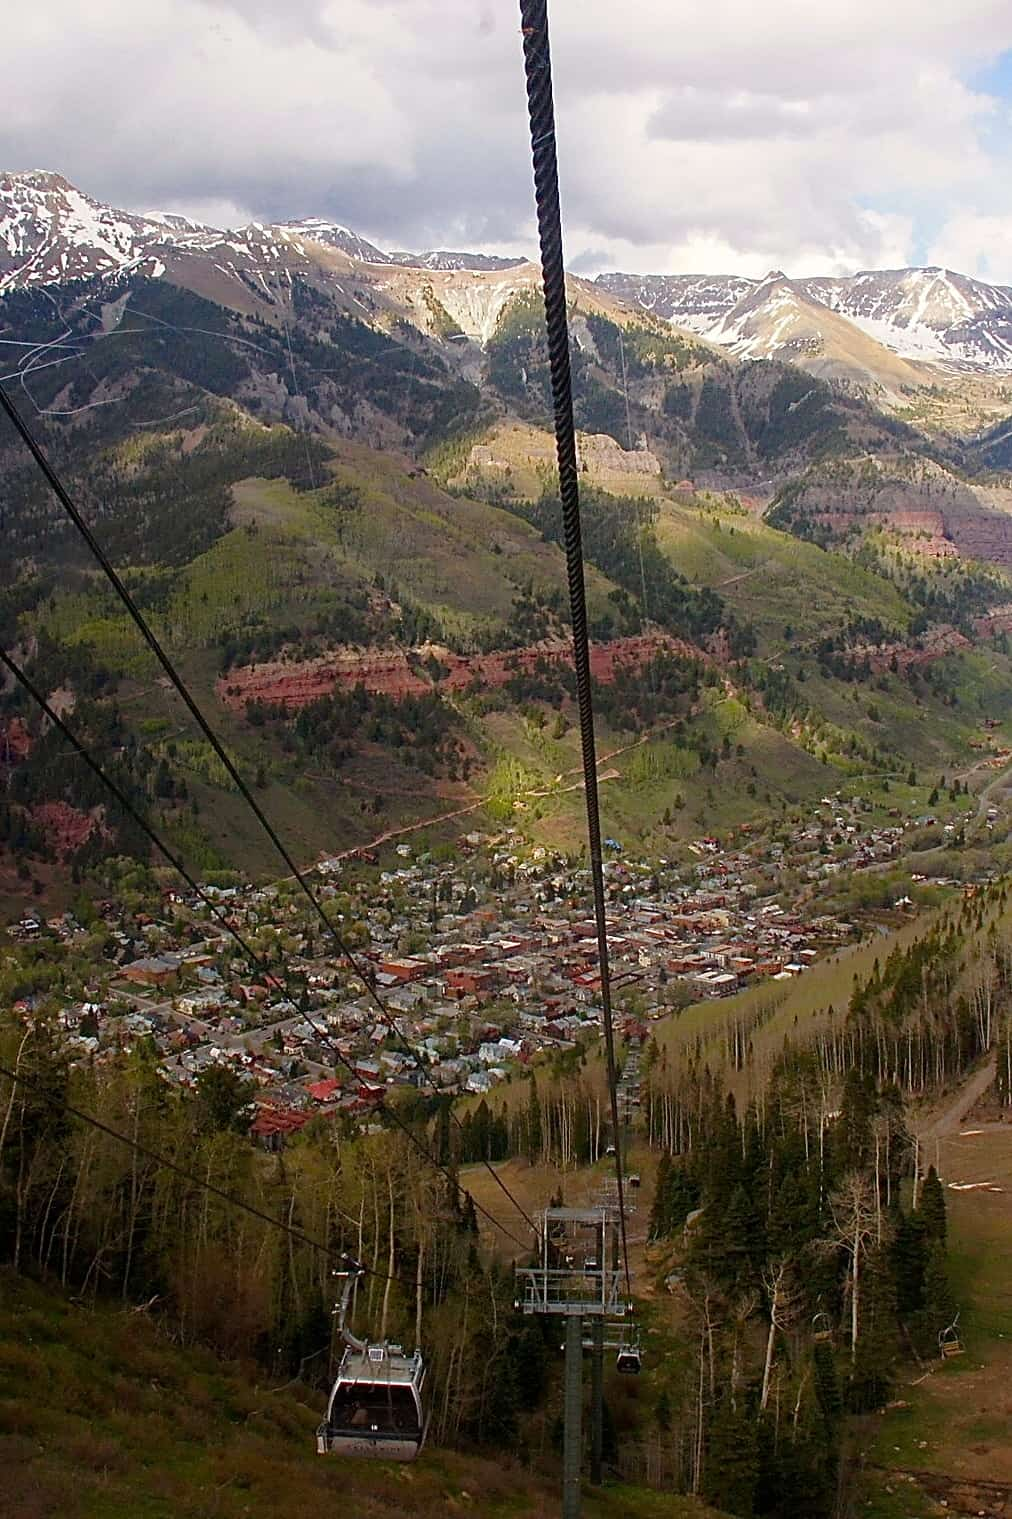 Telluride, CO -  2015 Top 8 Best City for Pet Travelers from GoPetFriendly.com